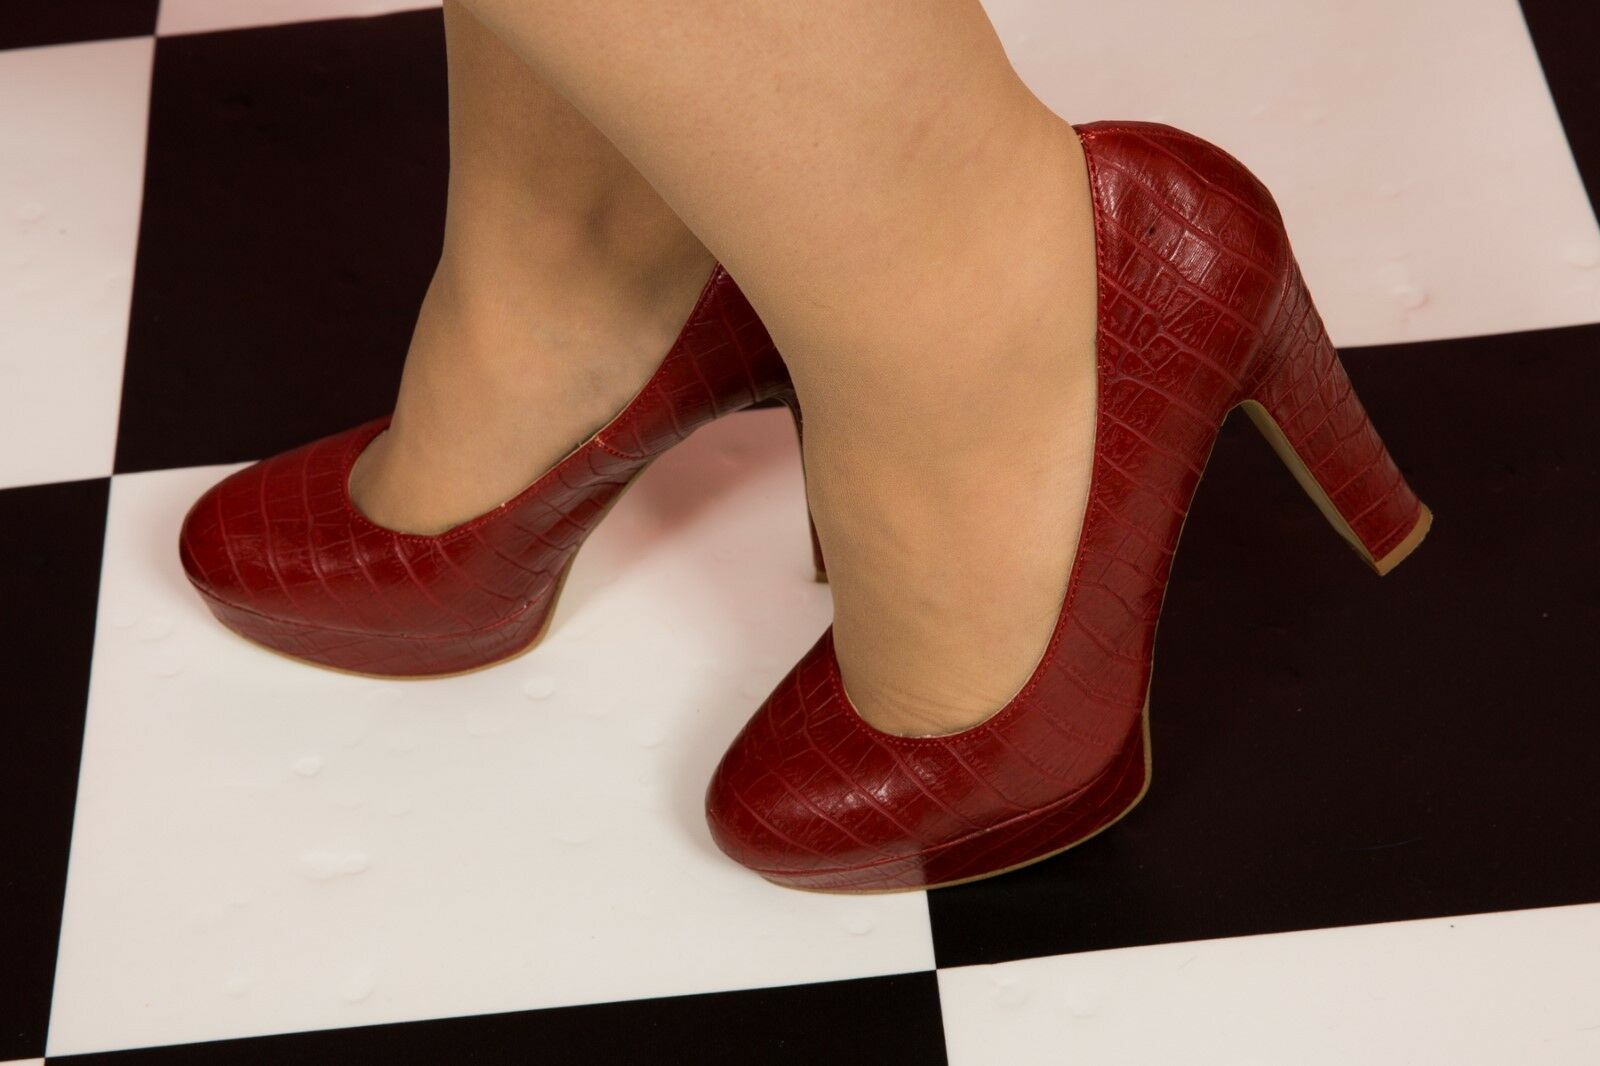 Burnt rouge mock croc leather court heels from Next Taille 6